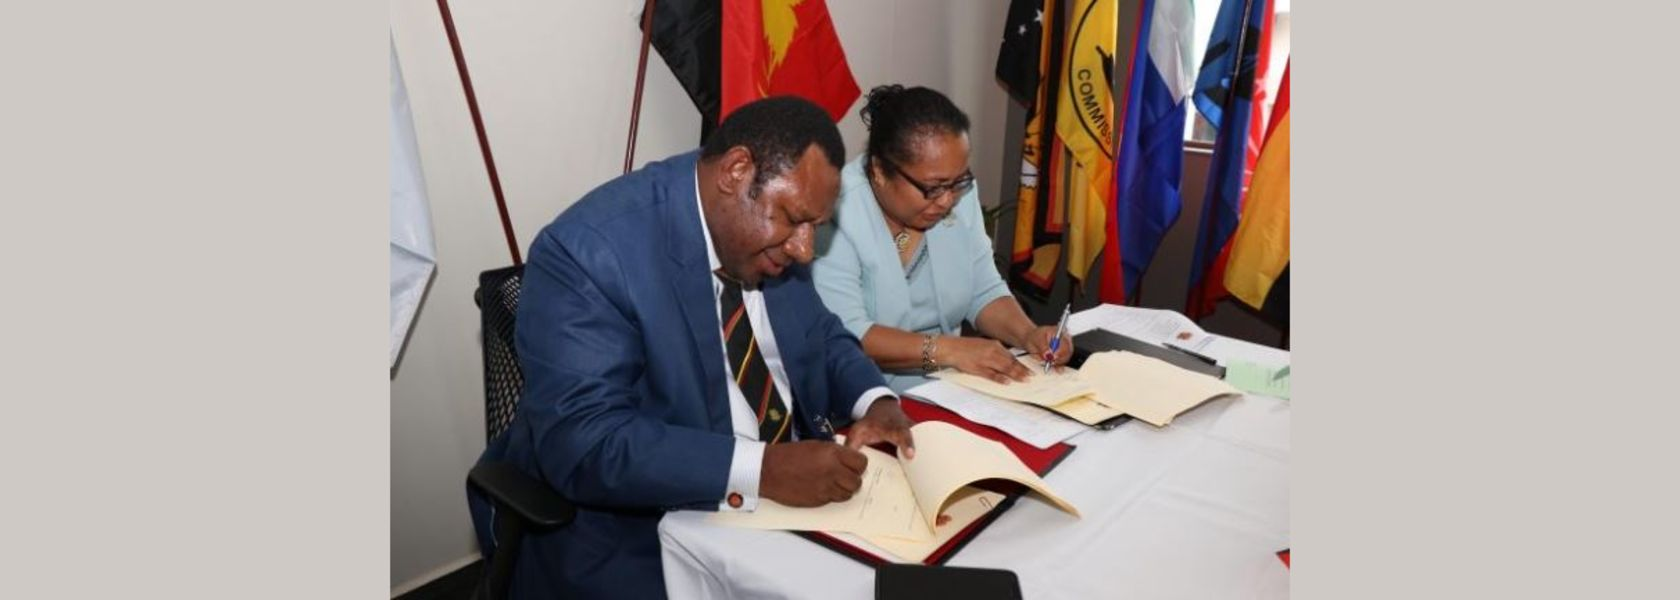 PNG consulate opens in Cairns.